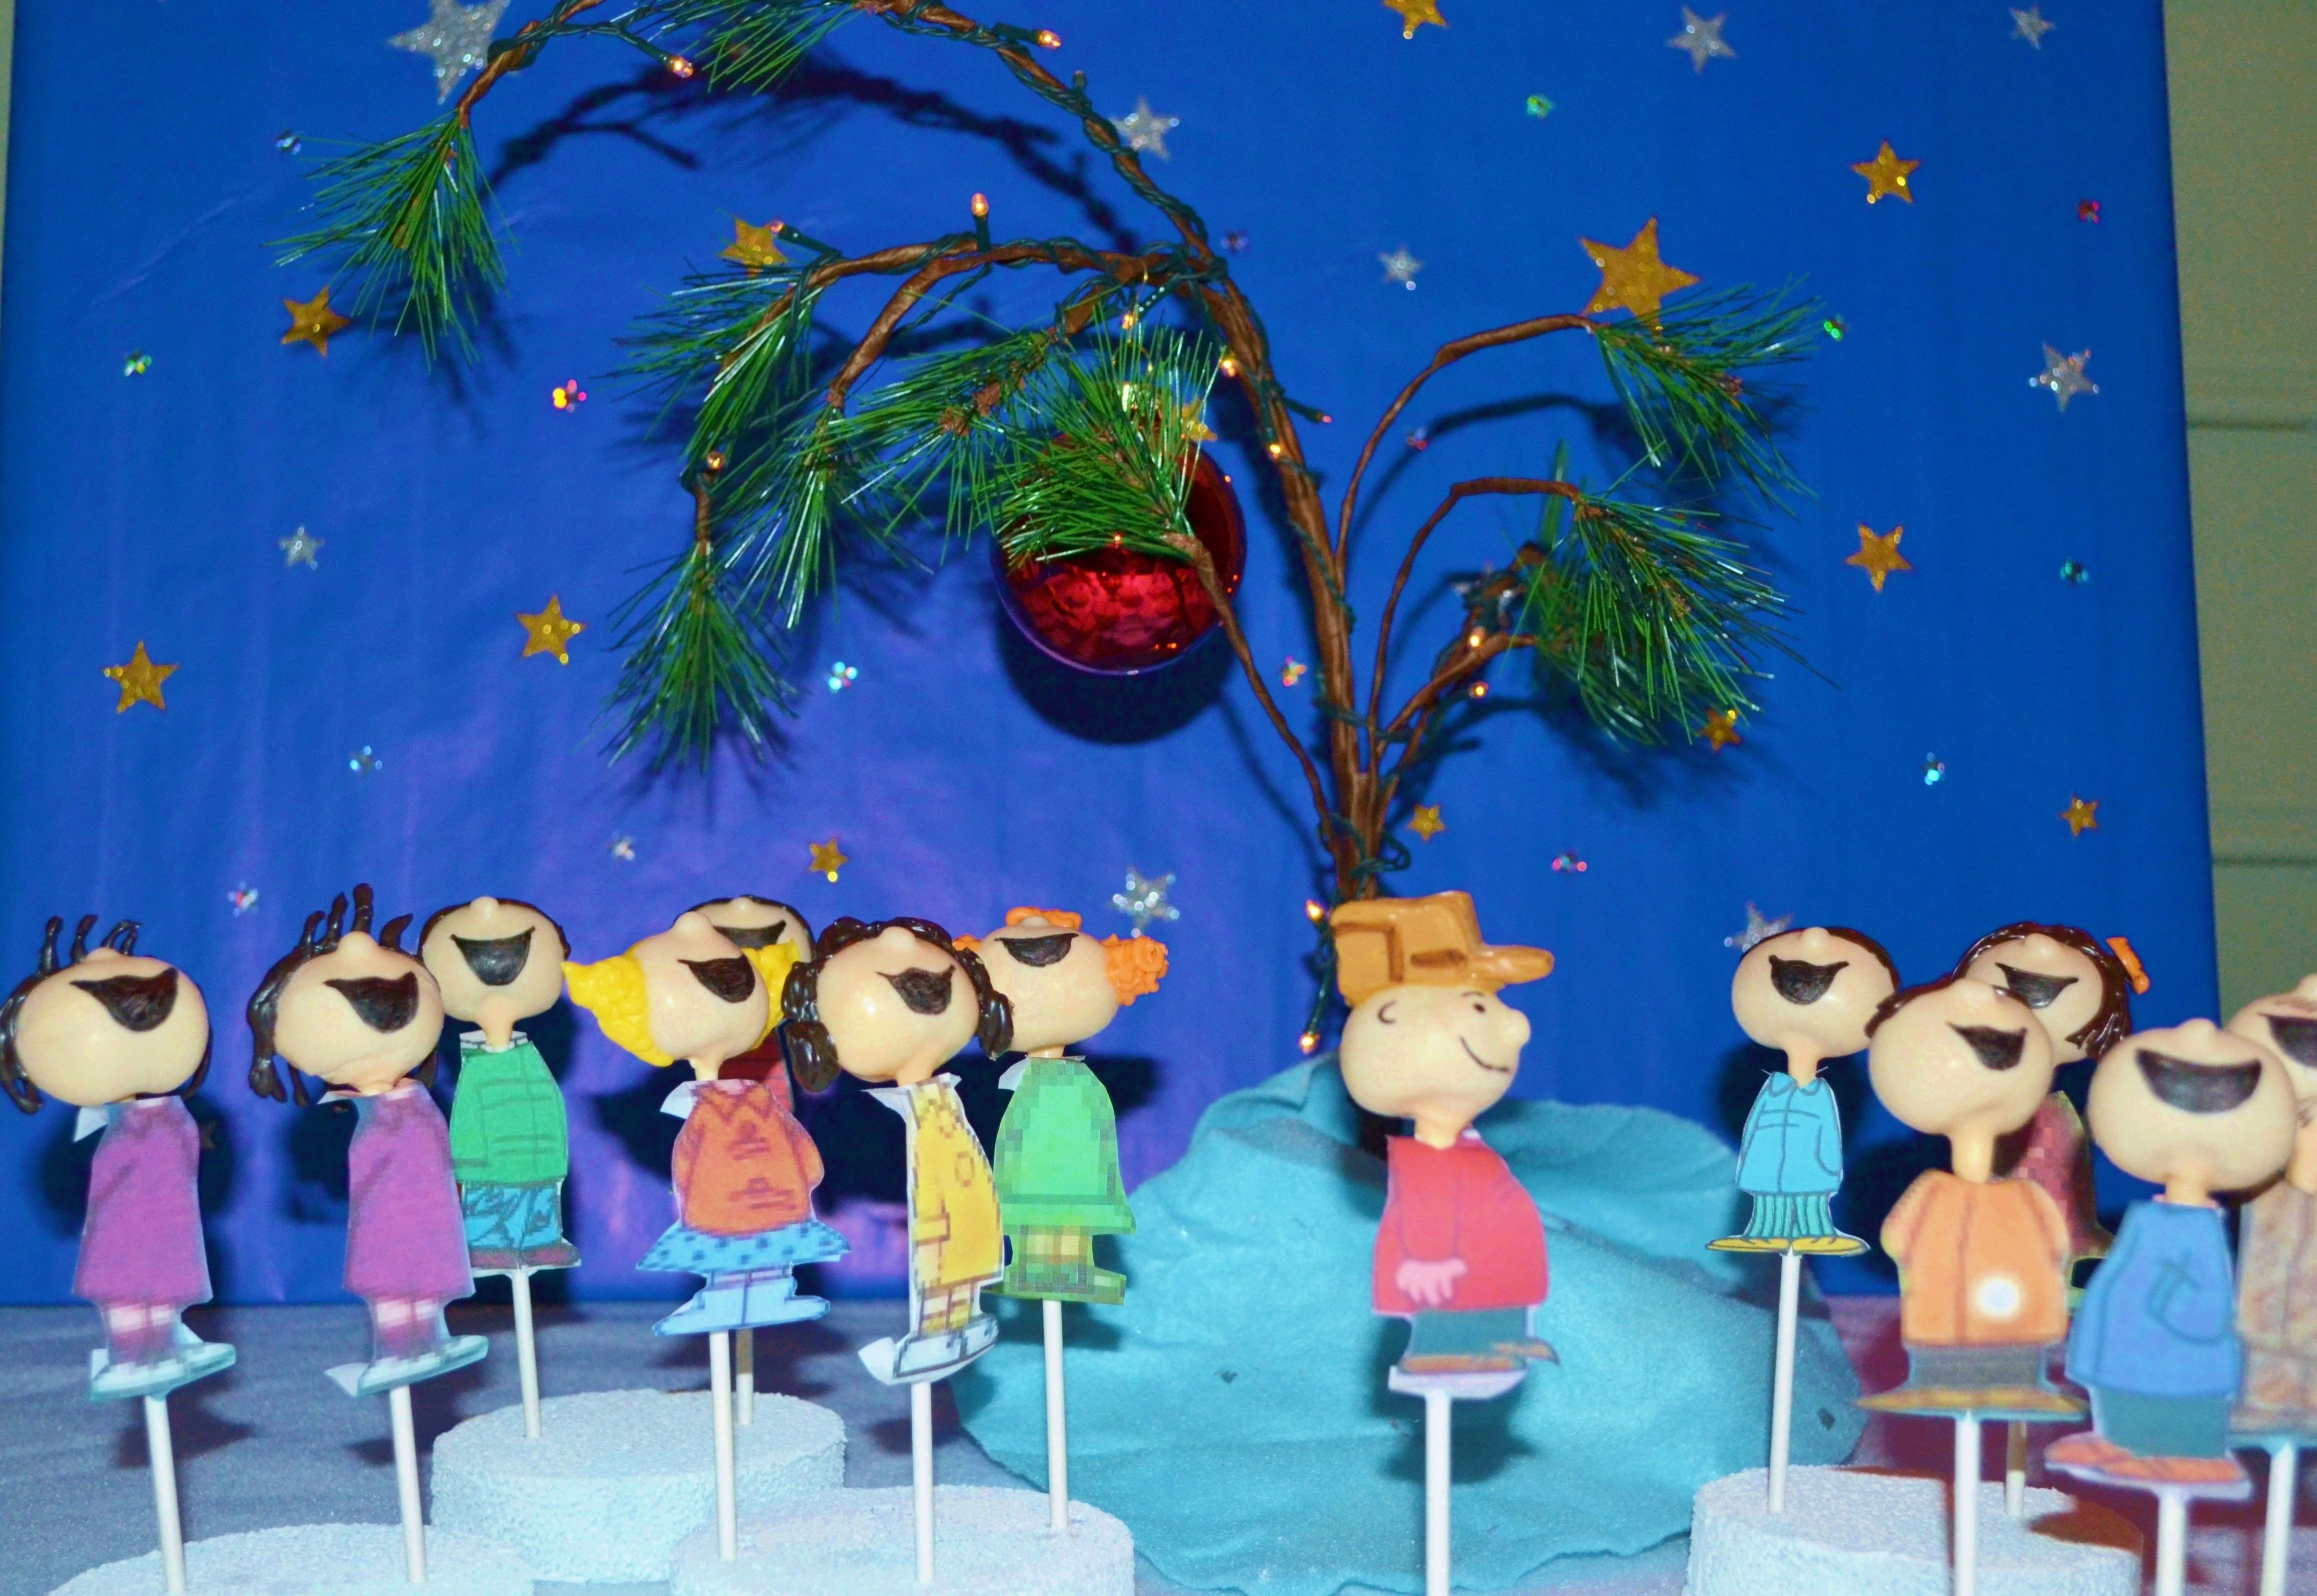 final scene of a charlie brown christmas made for a christmas party - When Was Charlie Brown Christmas Made